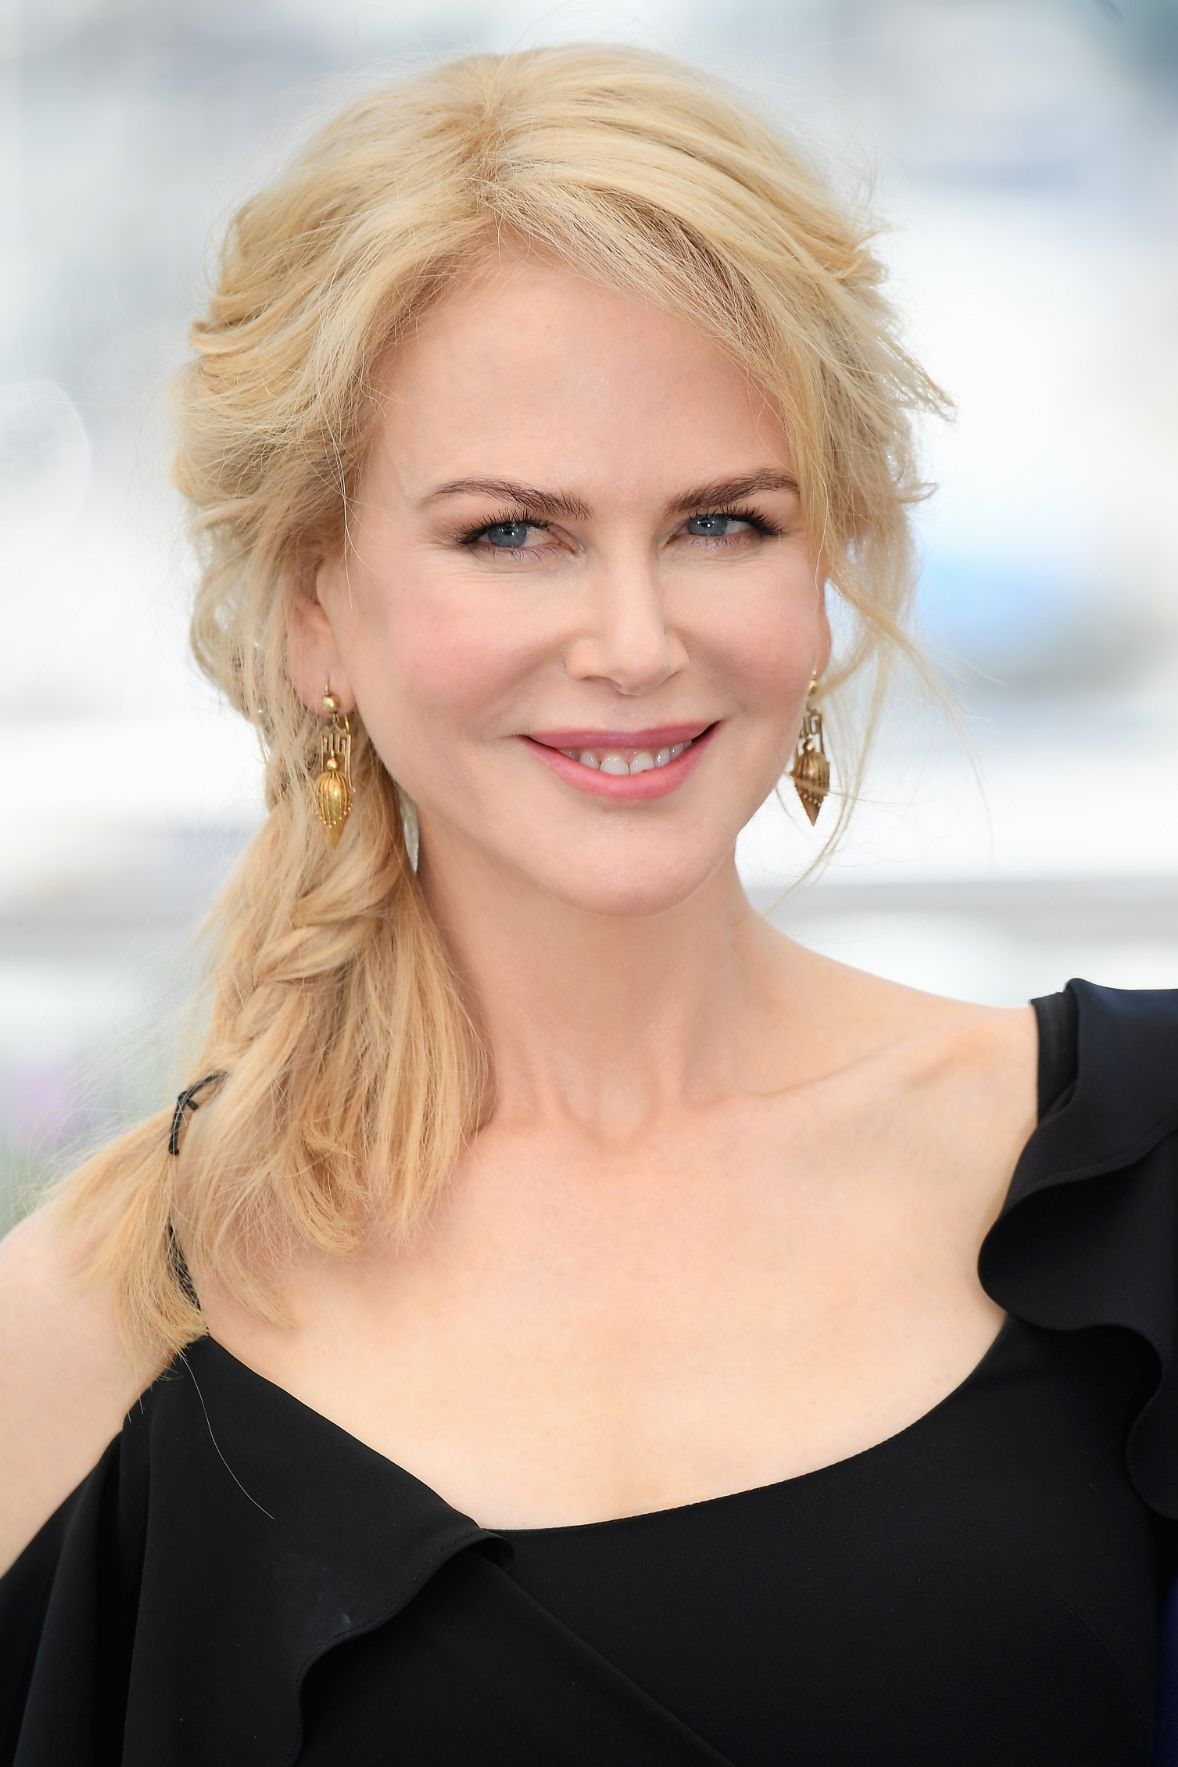 Nicole Kidman side braids hairstyles 2017 Cannes